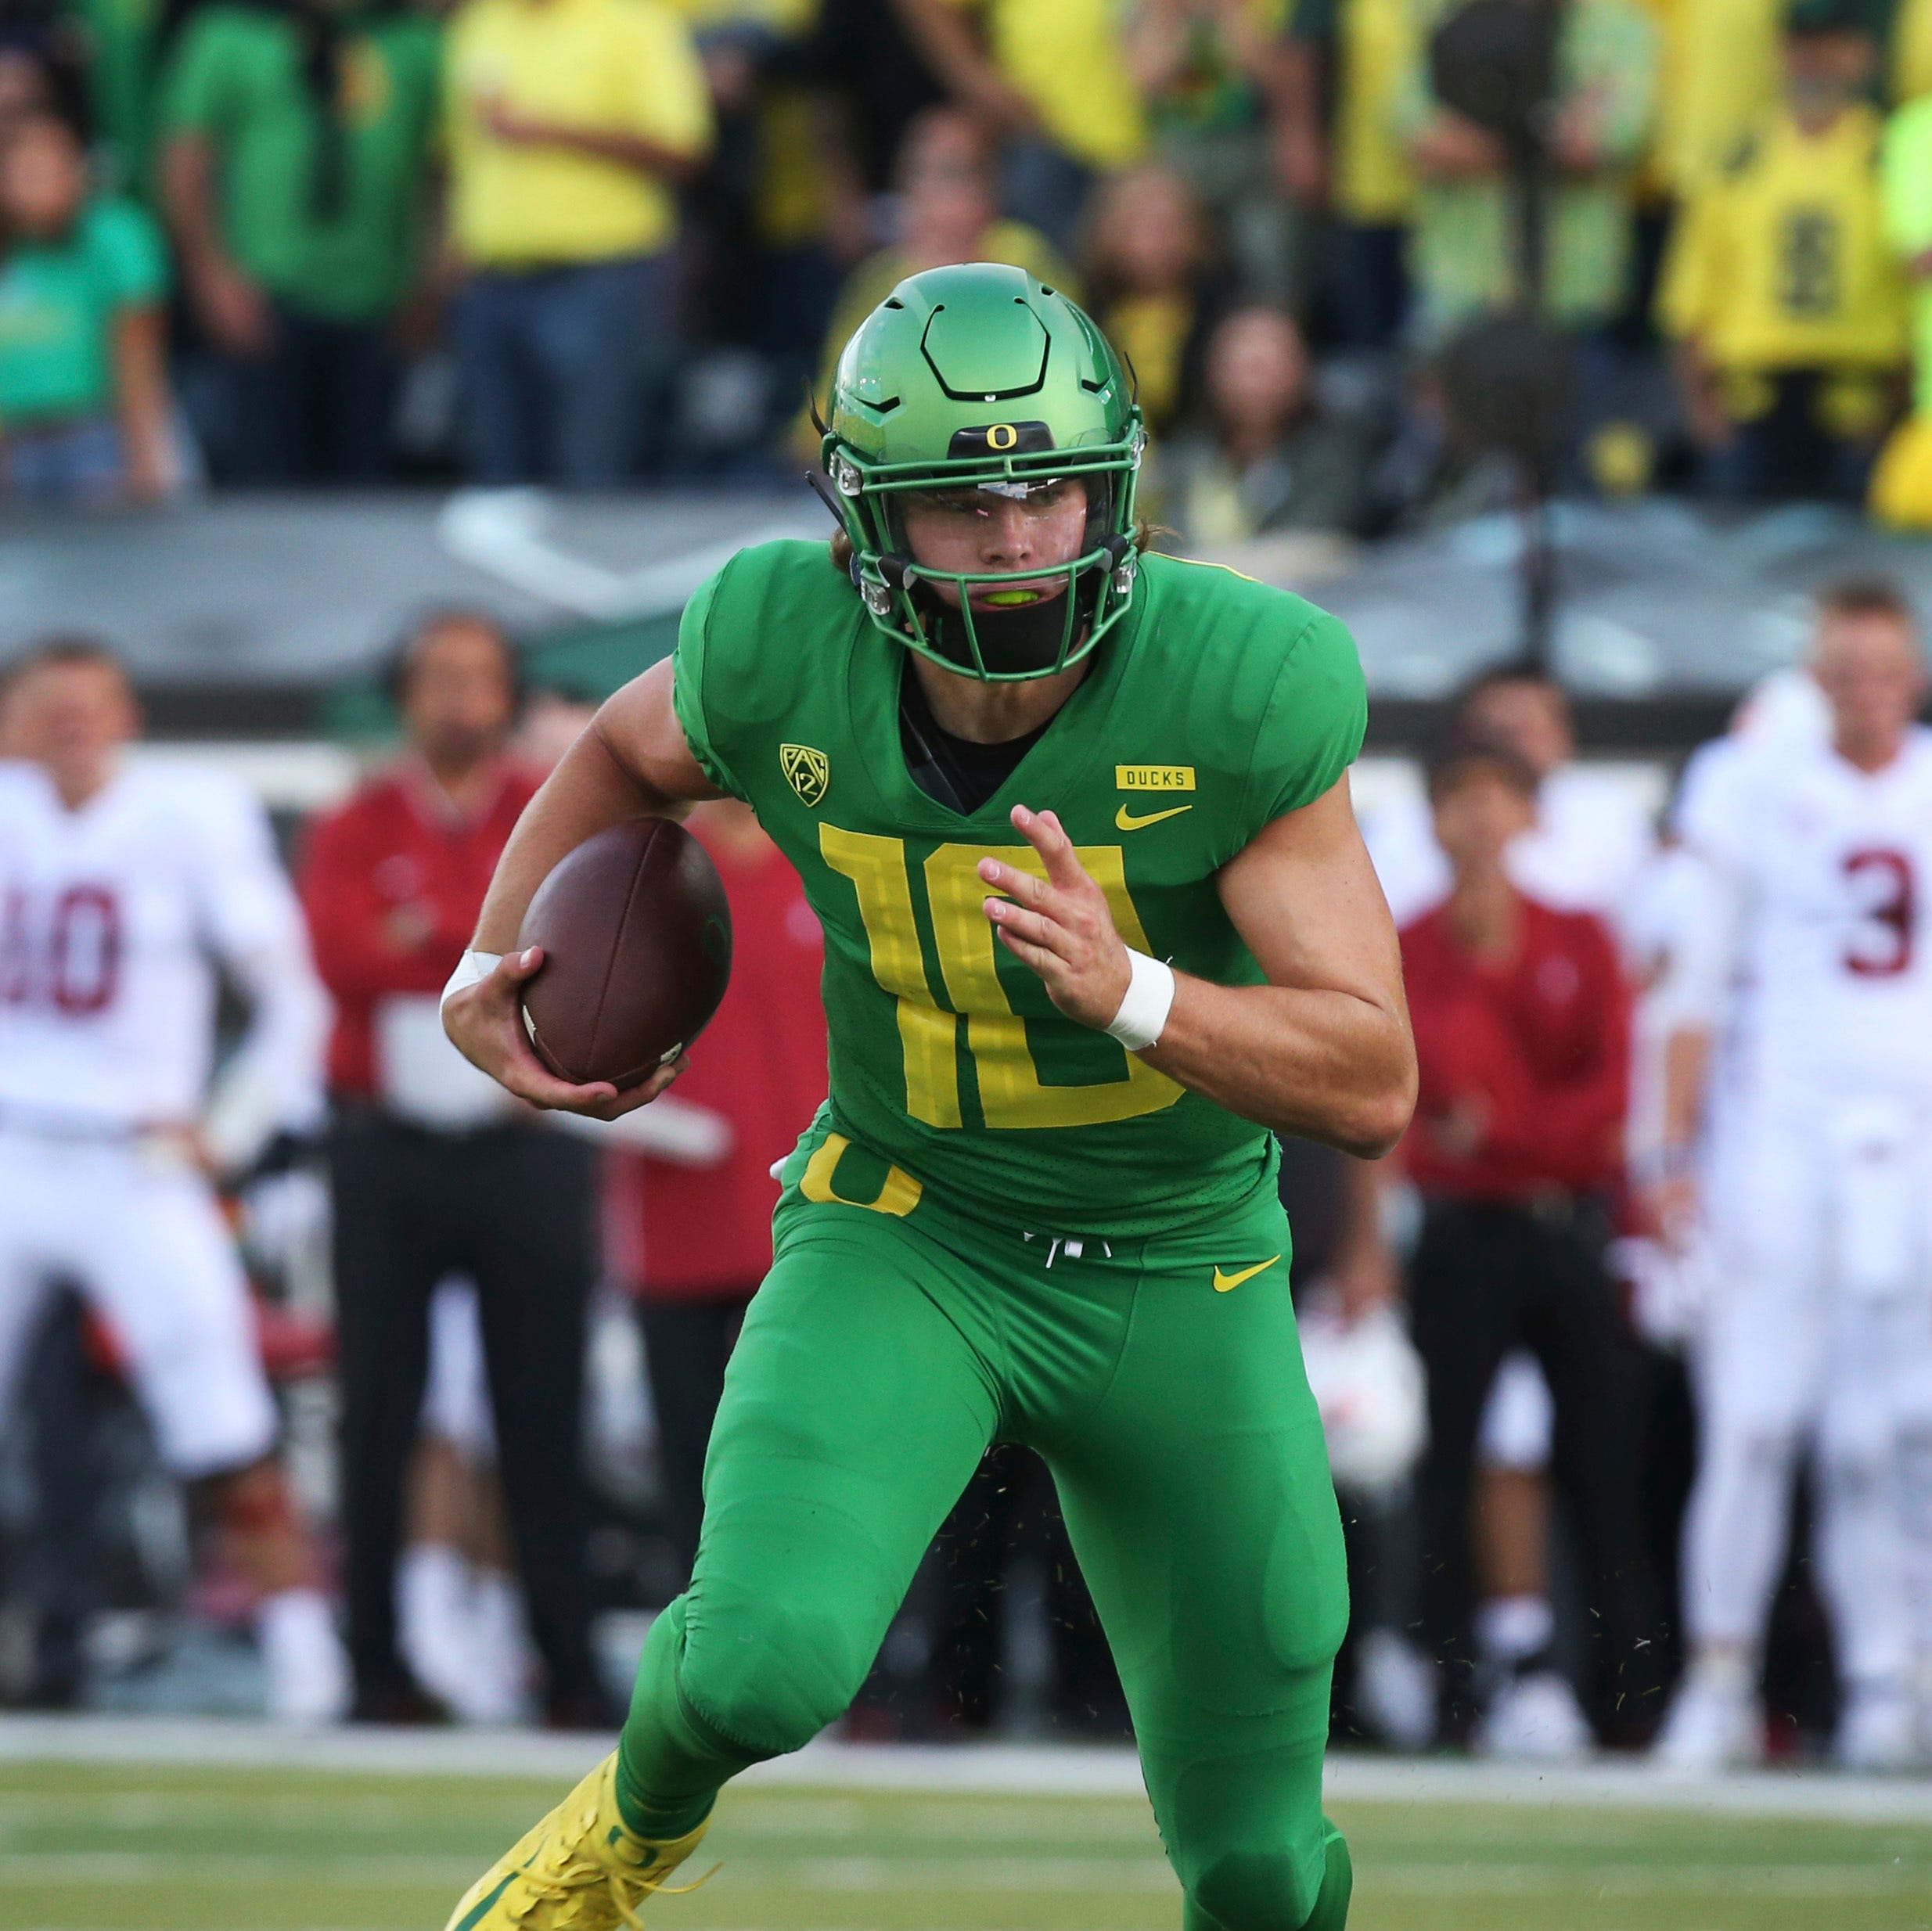 Oregon quarterback Justin Herbert might be licking his chops after watching UCLA freshman Dorian Thompson-Robinson carve up the Washington defense last week.